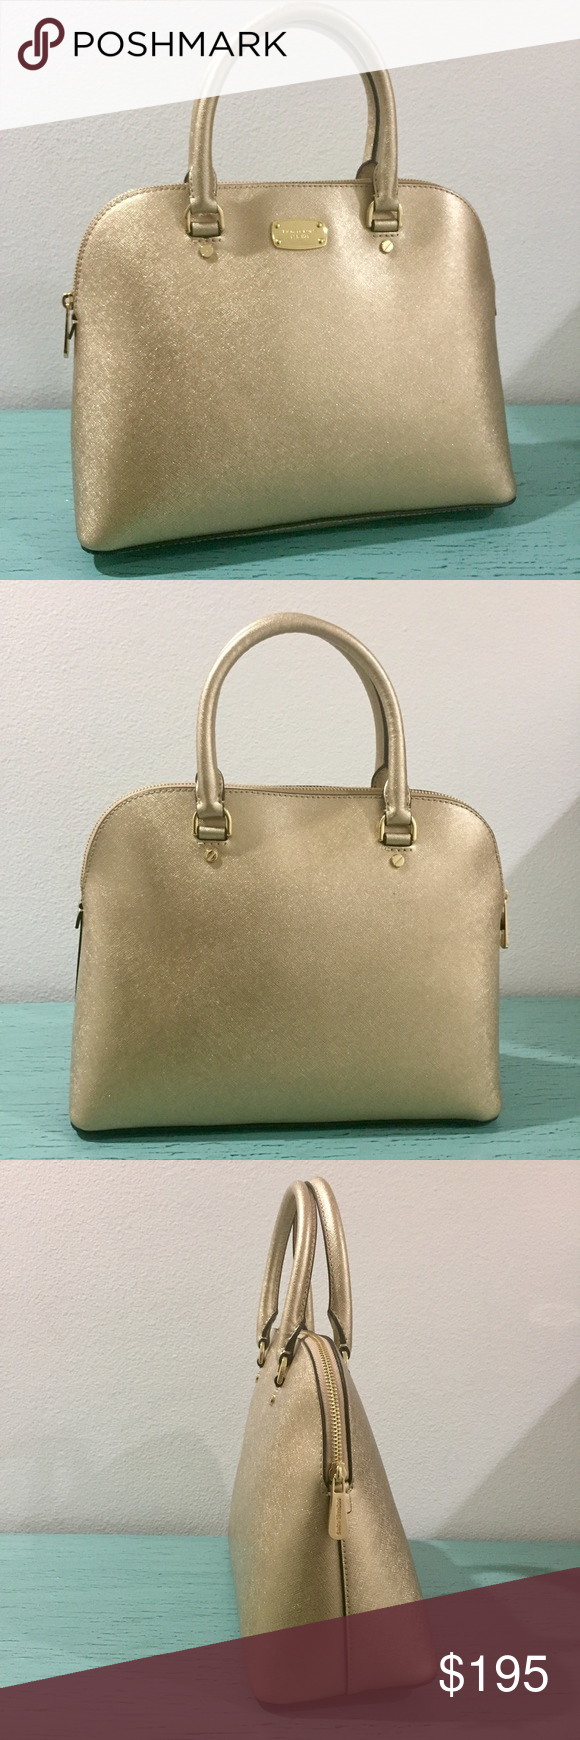 6013c71e827ffc NWT: Michael Kors Cindy Gold Bag Michael Kors, LG, pale gold, Cindy bag.  Dimensions: H9.5 x D5 x L13 saffiano leather. Not over the top gold.